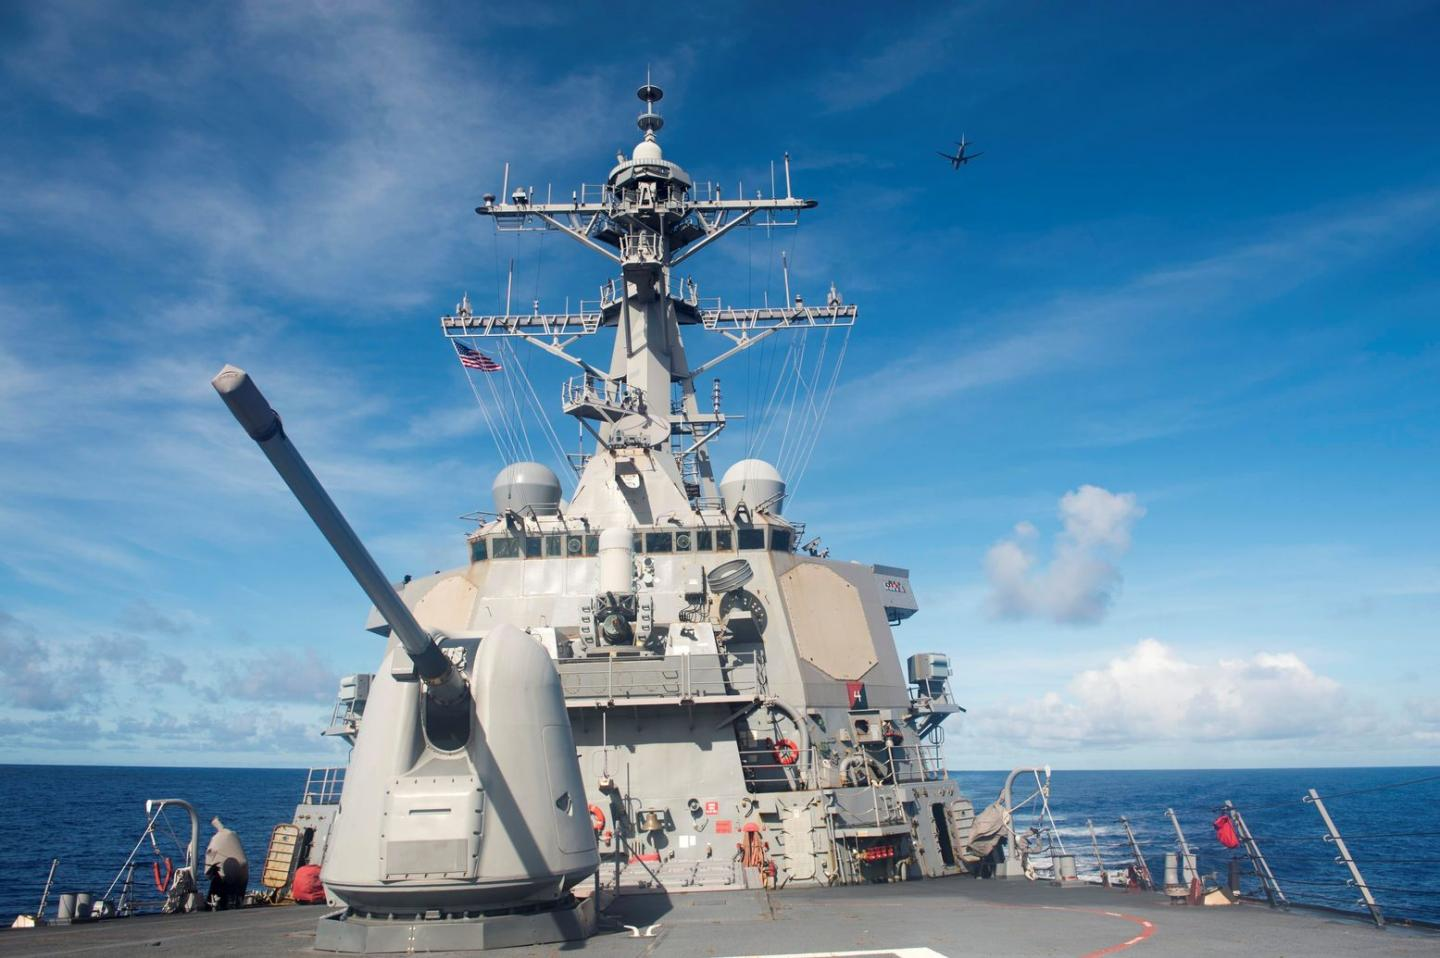 Cat and Mouse: A U.S. Destroyer Shadowed a Russian Warship in the Caribbean